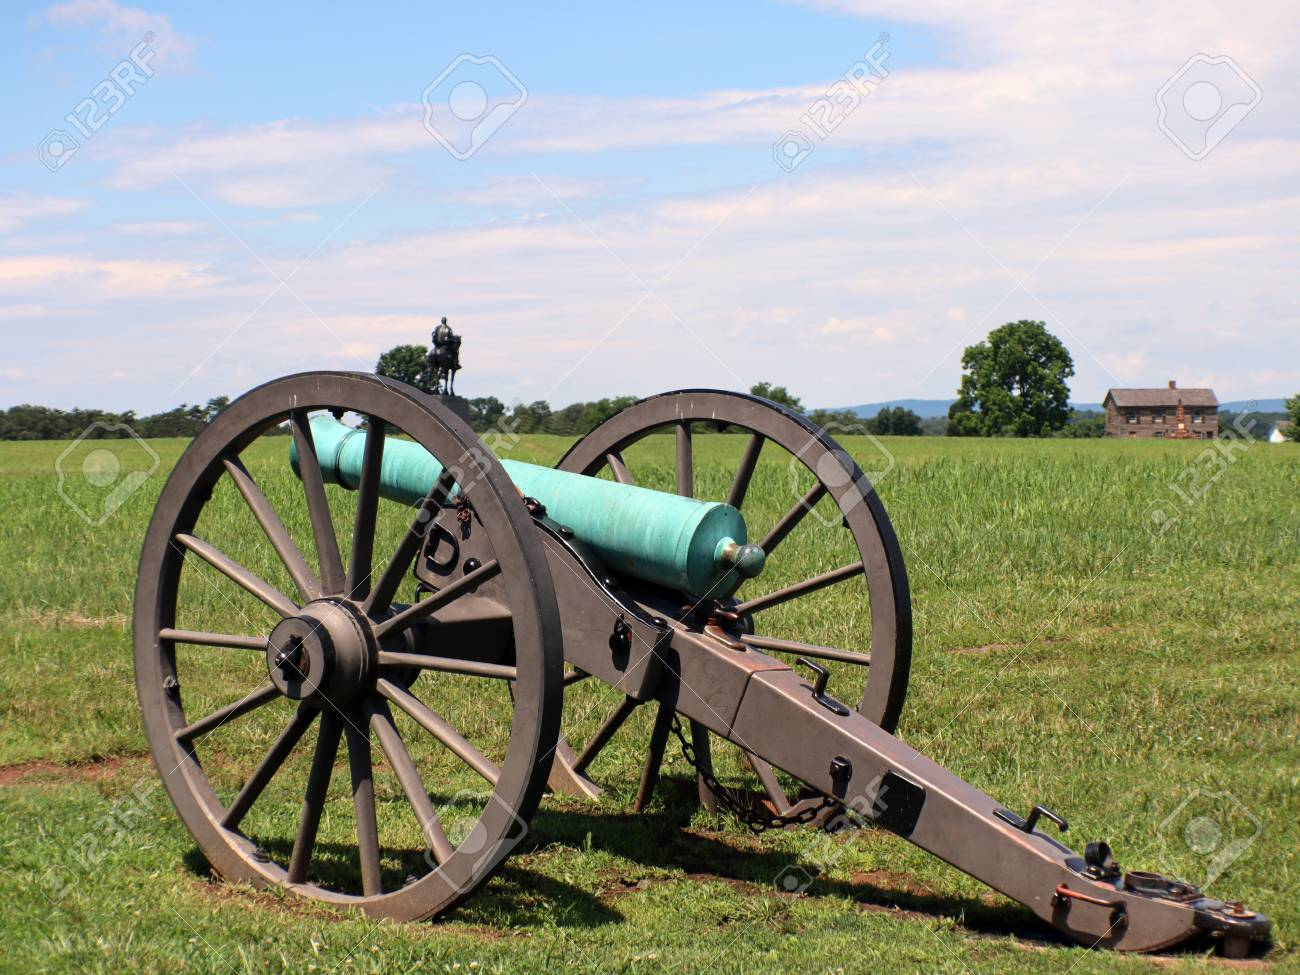 Civil War Cannon With House And Man On A Horse In The Background 1300x975